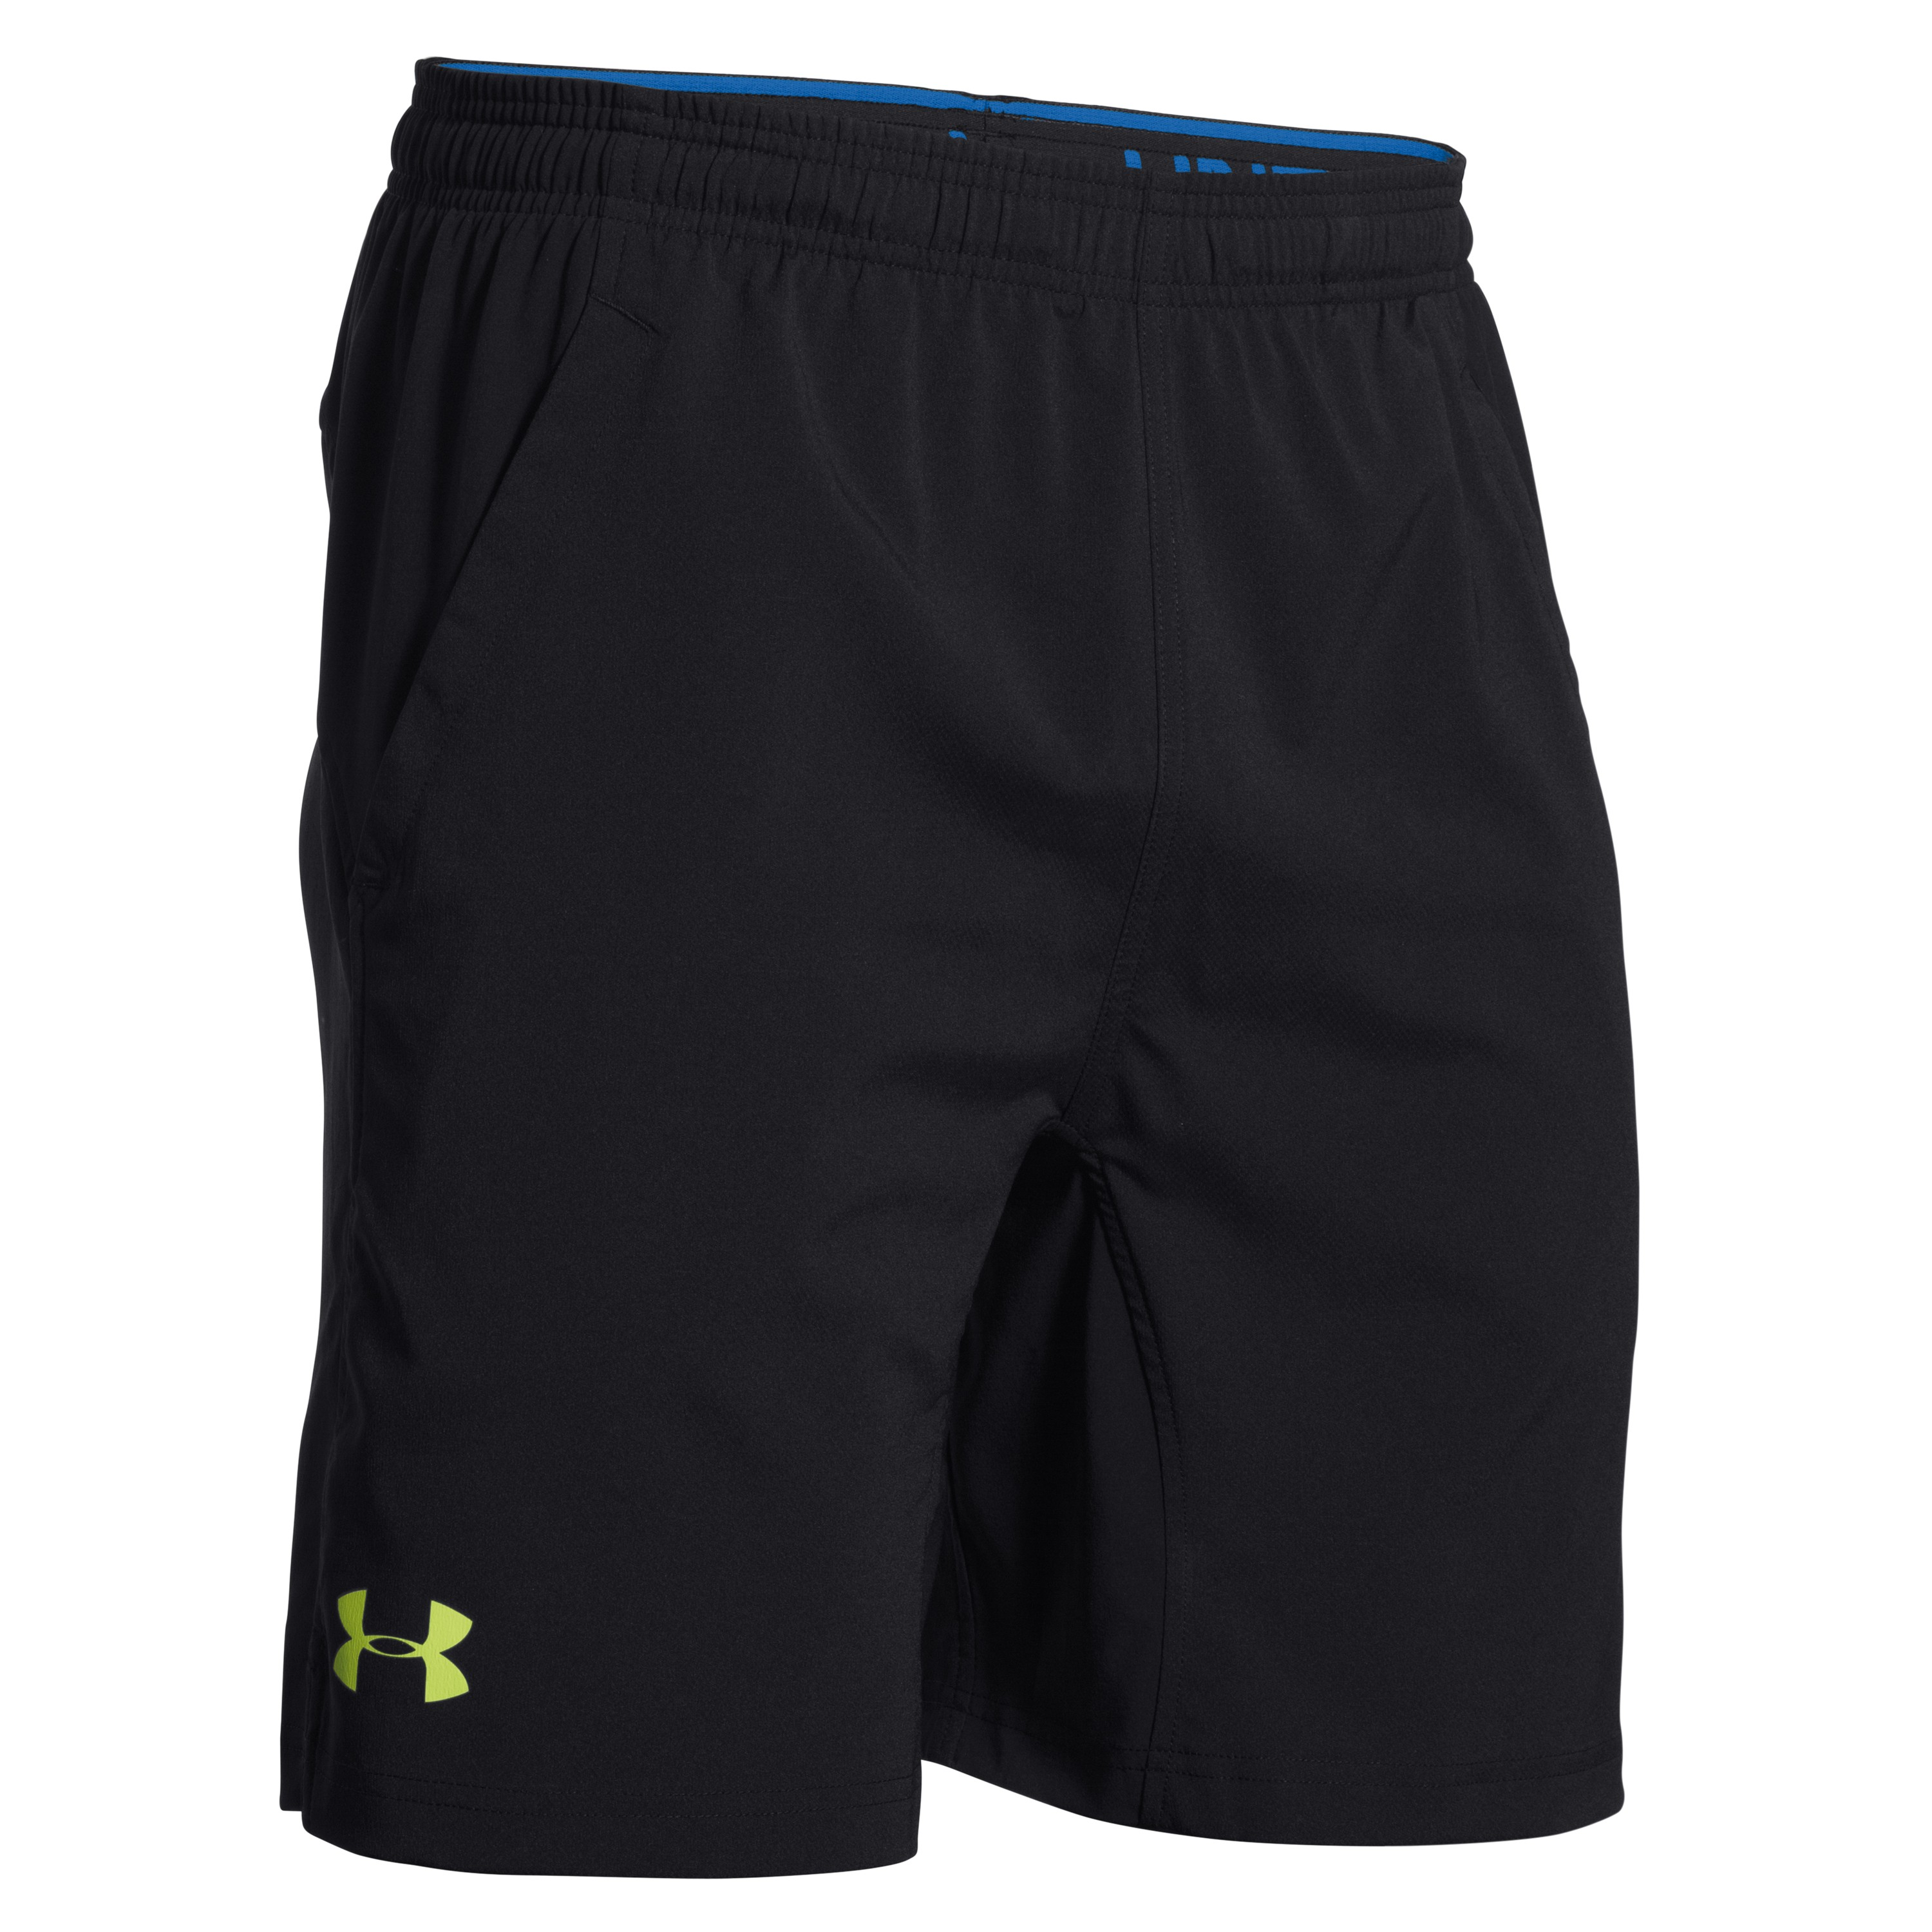 Under Armour Shorts HIIT schwarz-gelb